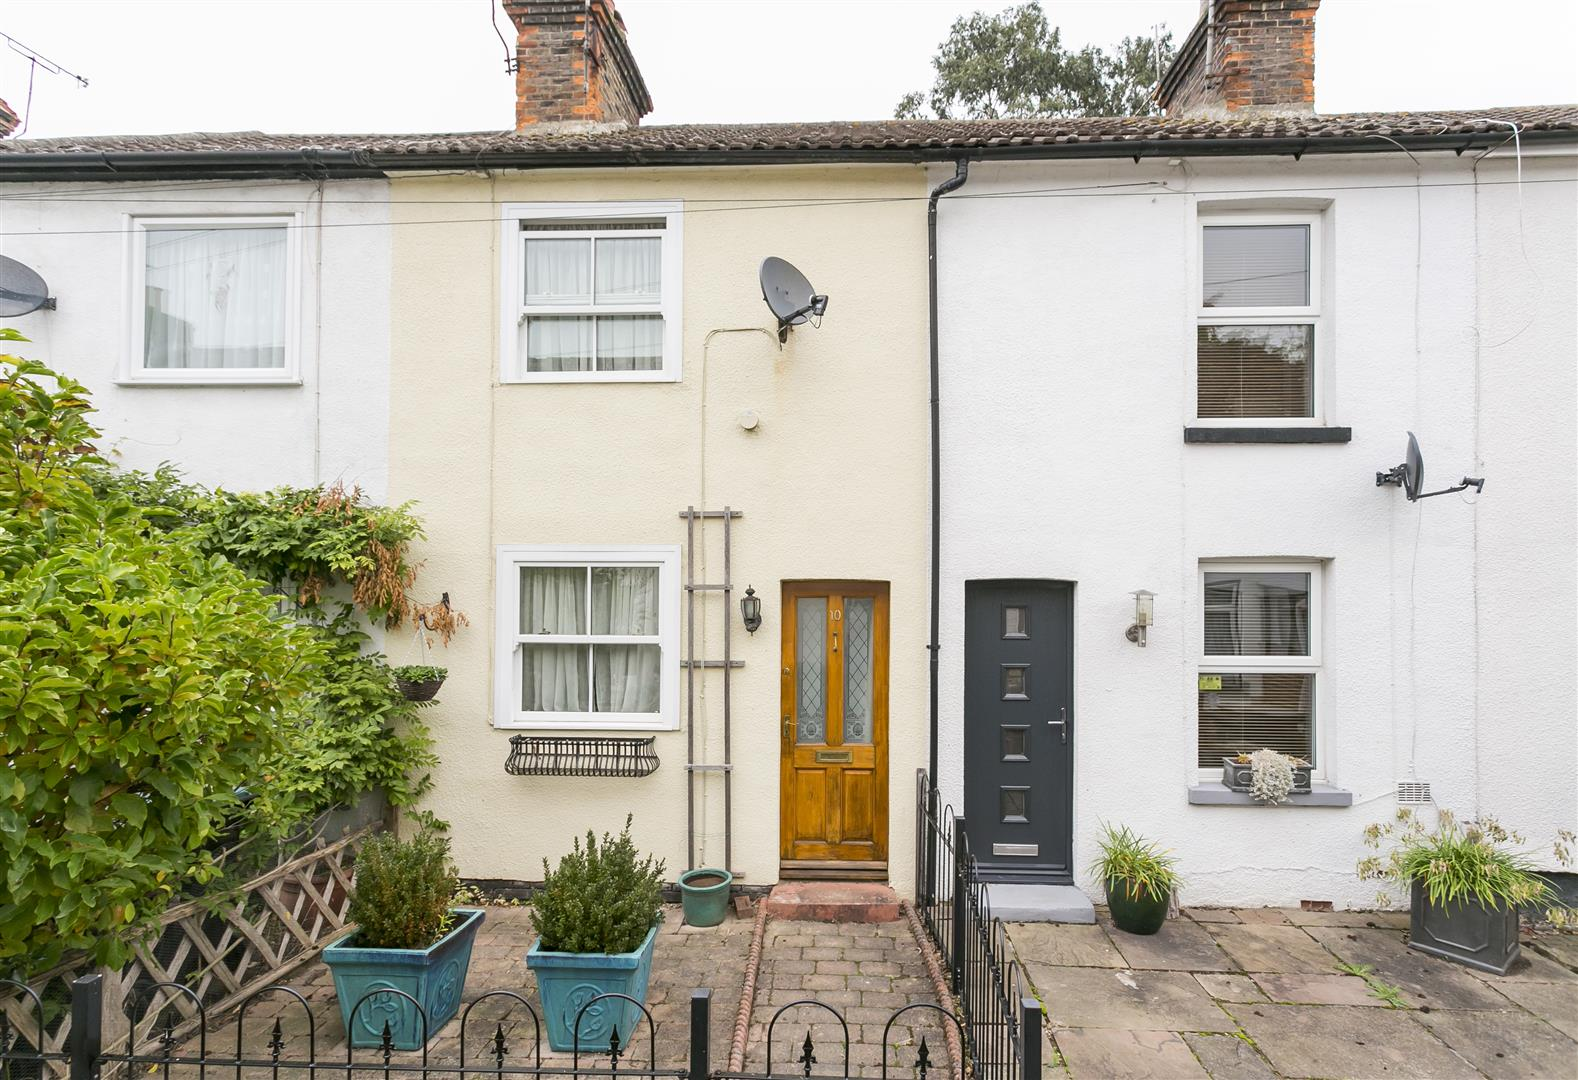 2 Bedrooms House for sale in Bow Terrace, Off Bow Road, Wateringbury